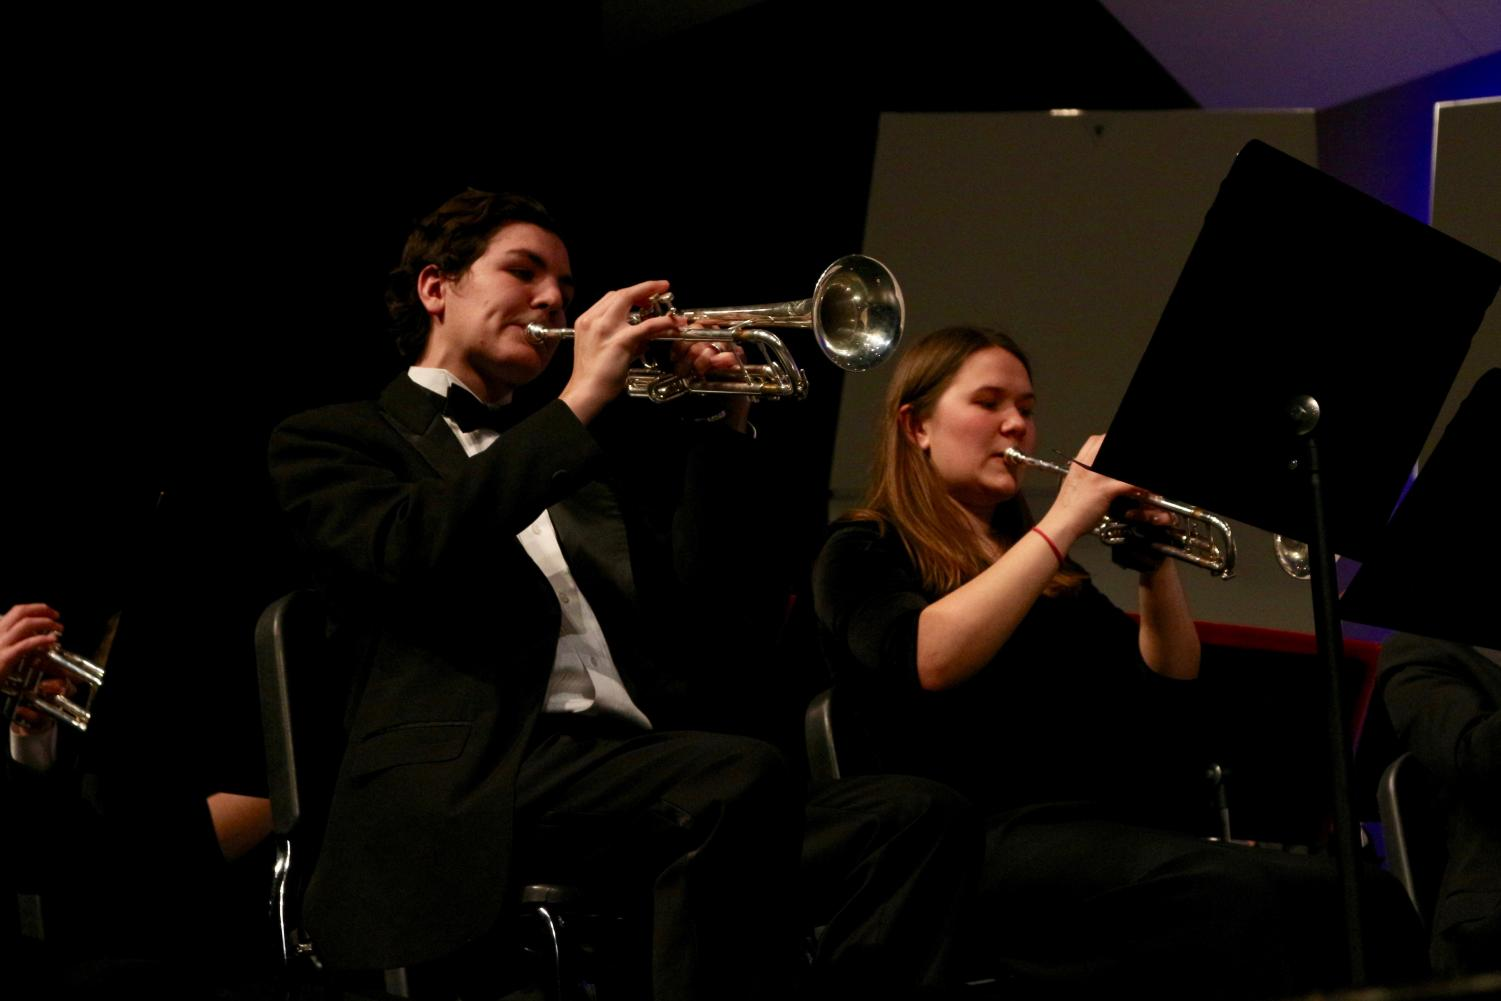 Playing+the+trumpets%2C+Clark+Woodruff+and+Grace+Mennerick%2C+juniors%2C+perform+at+the+band+concert+Feb.+28.+